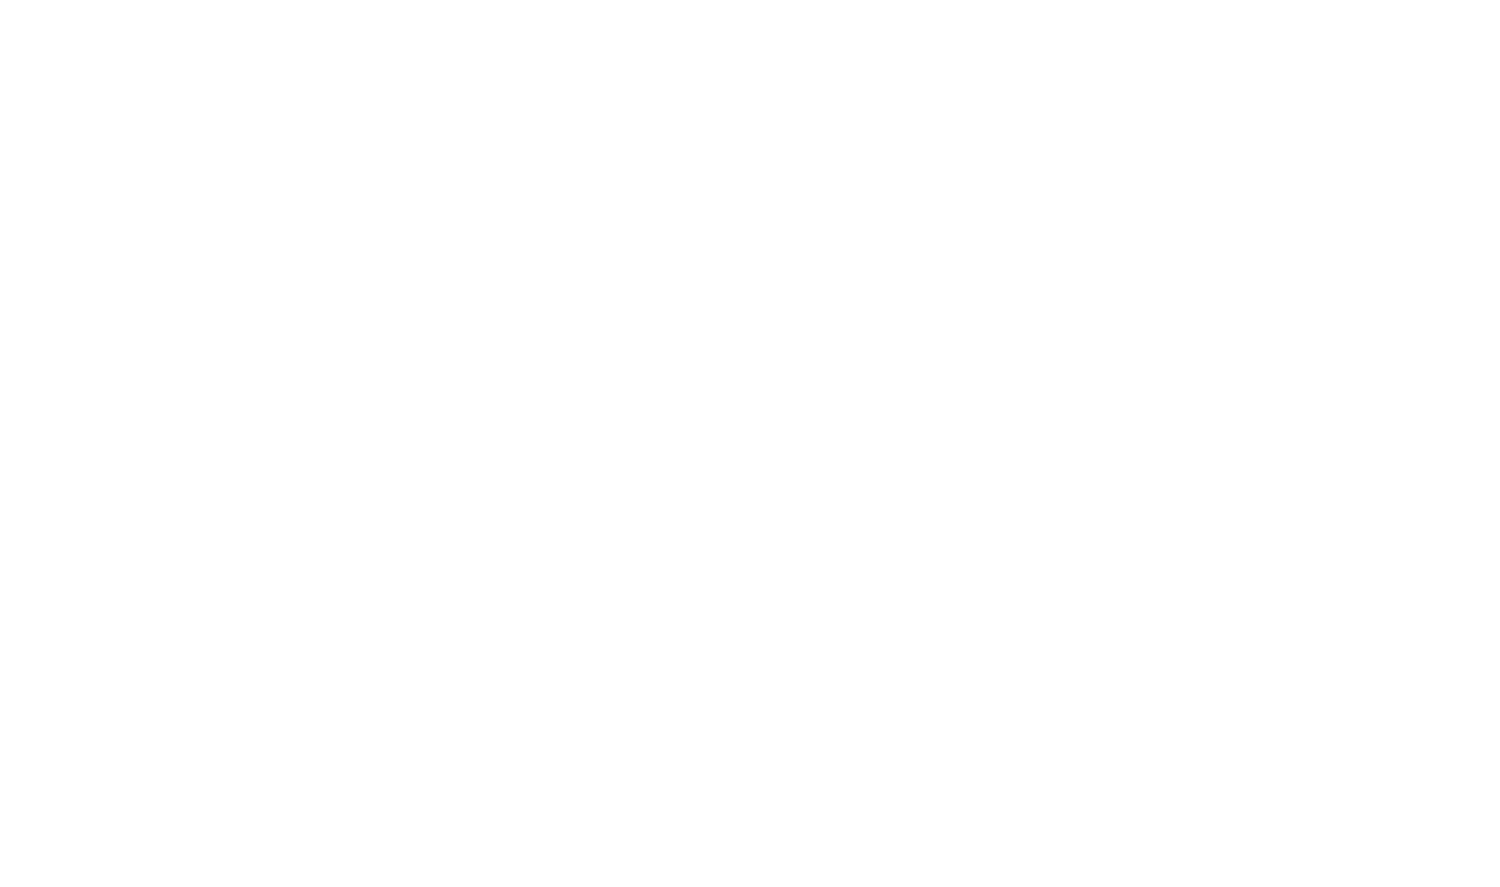 Perk: The Natural Beauty Lab